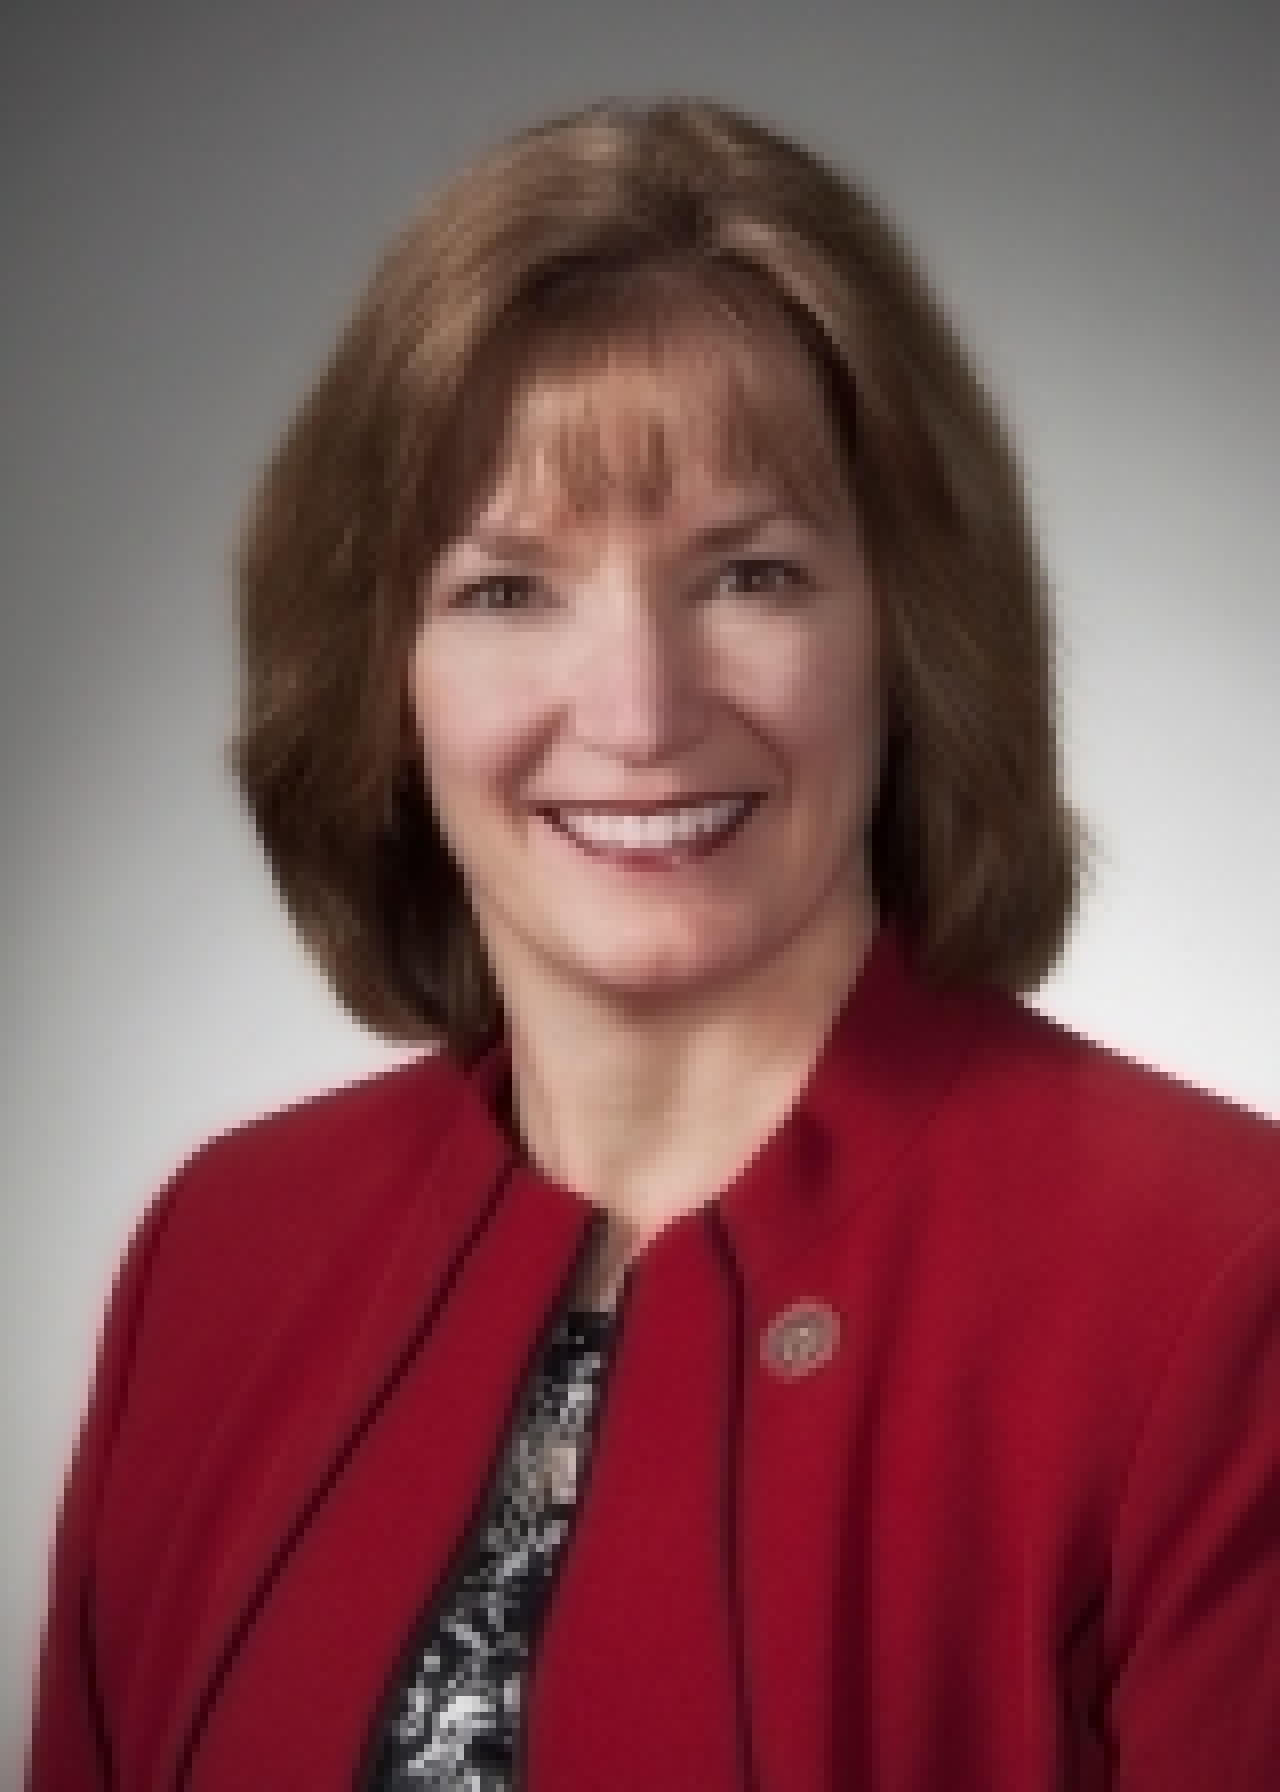 Rep. Anielski Applauds Passage of Bill to Raise Awareness for Teen Dating Violence